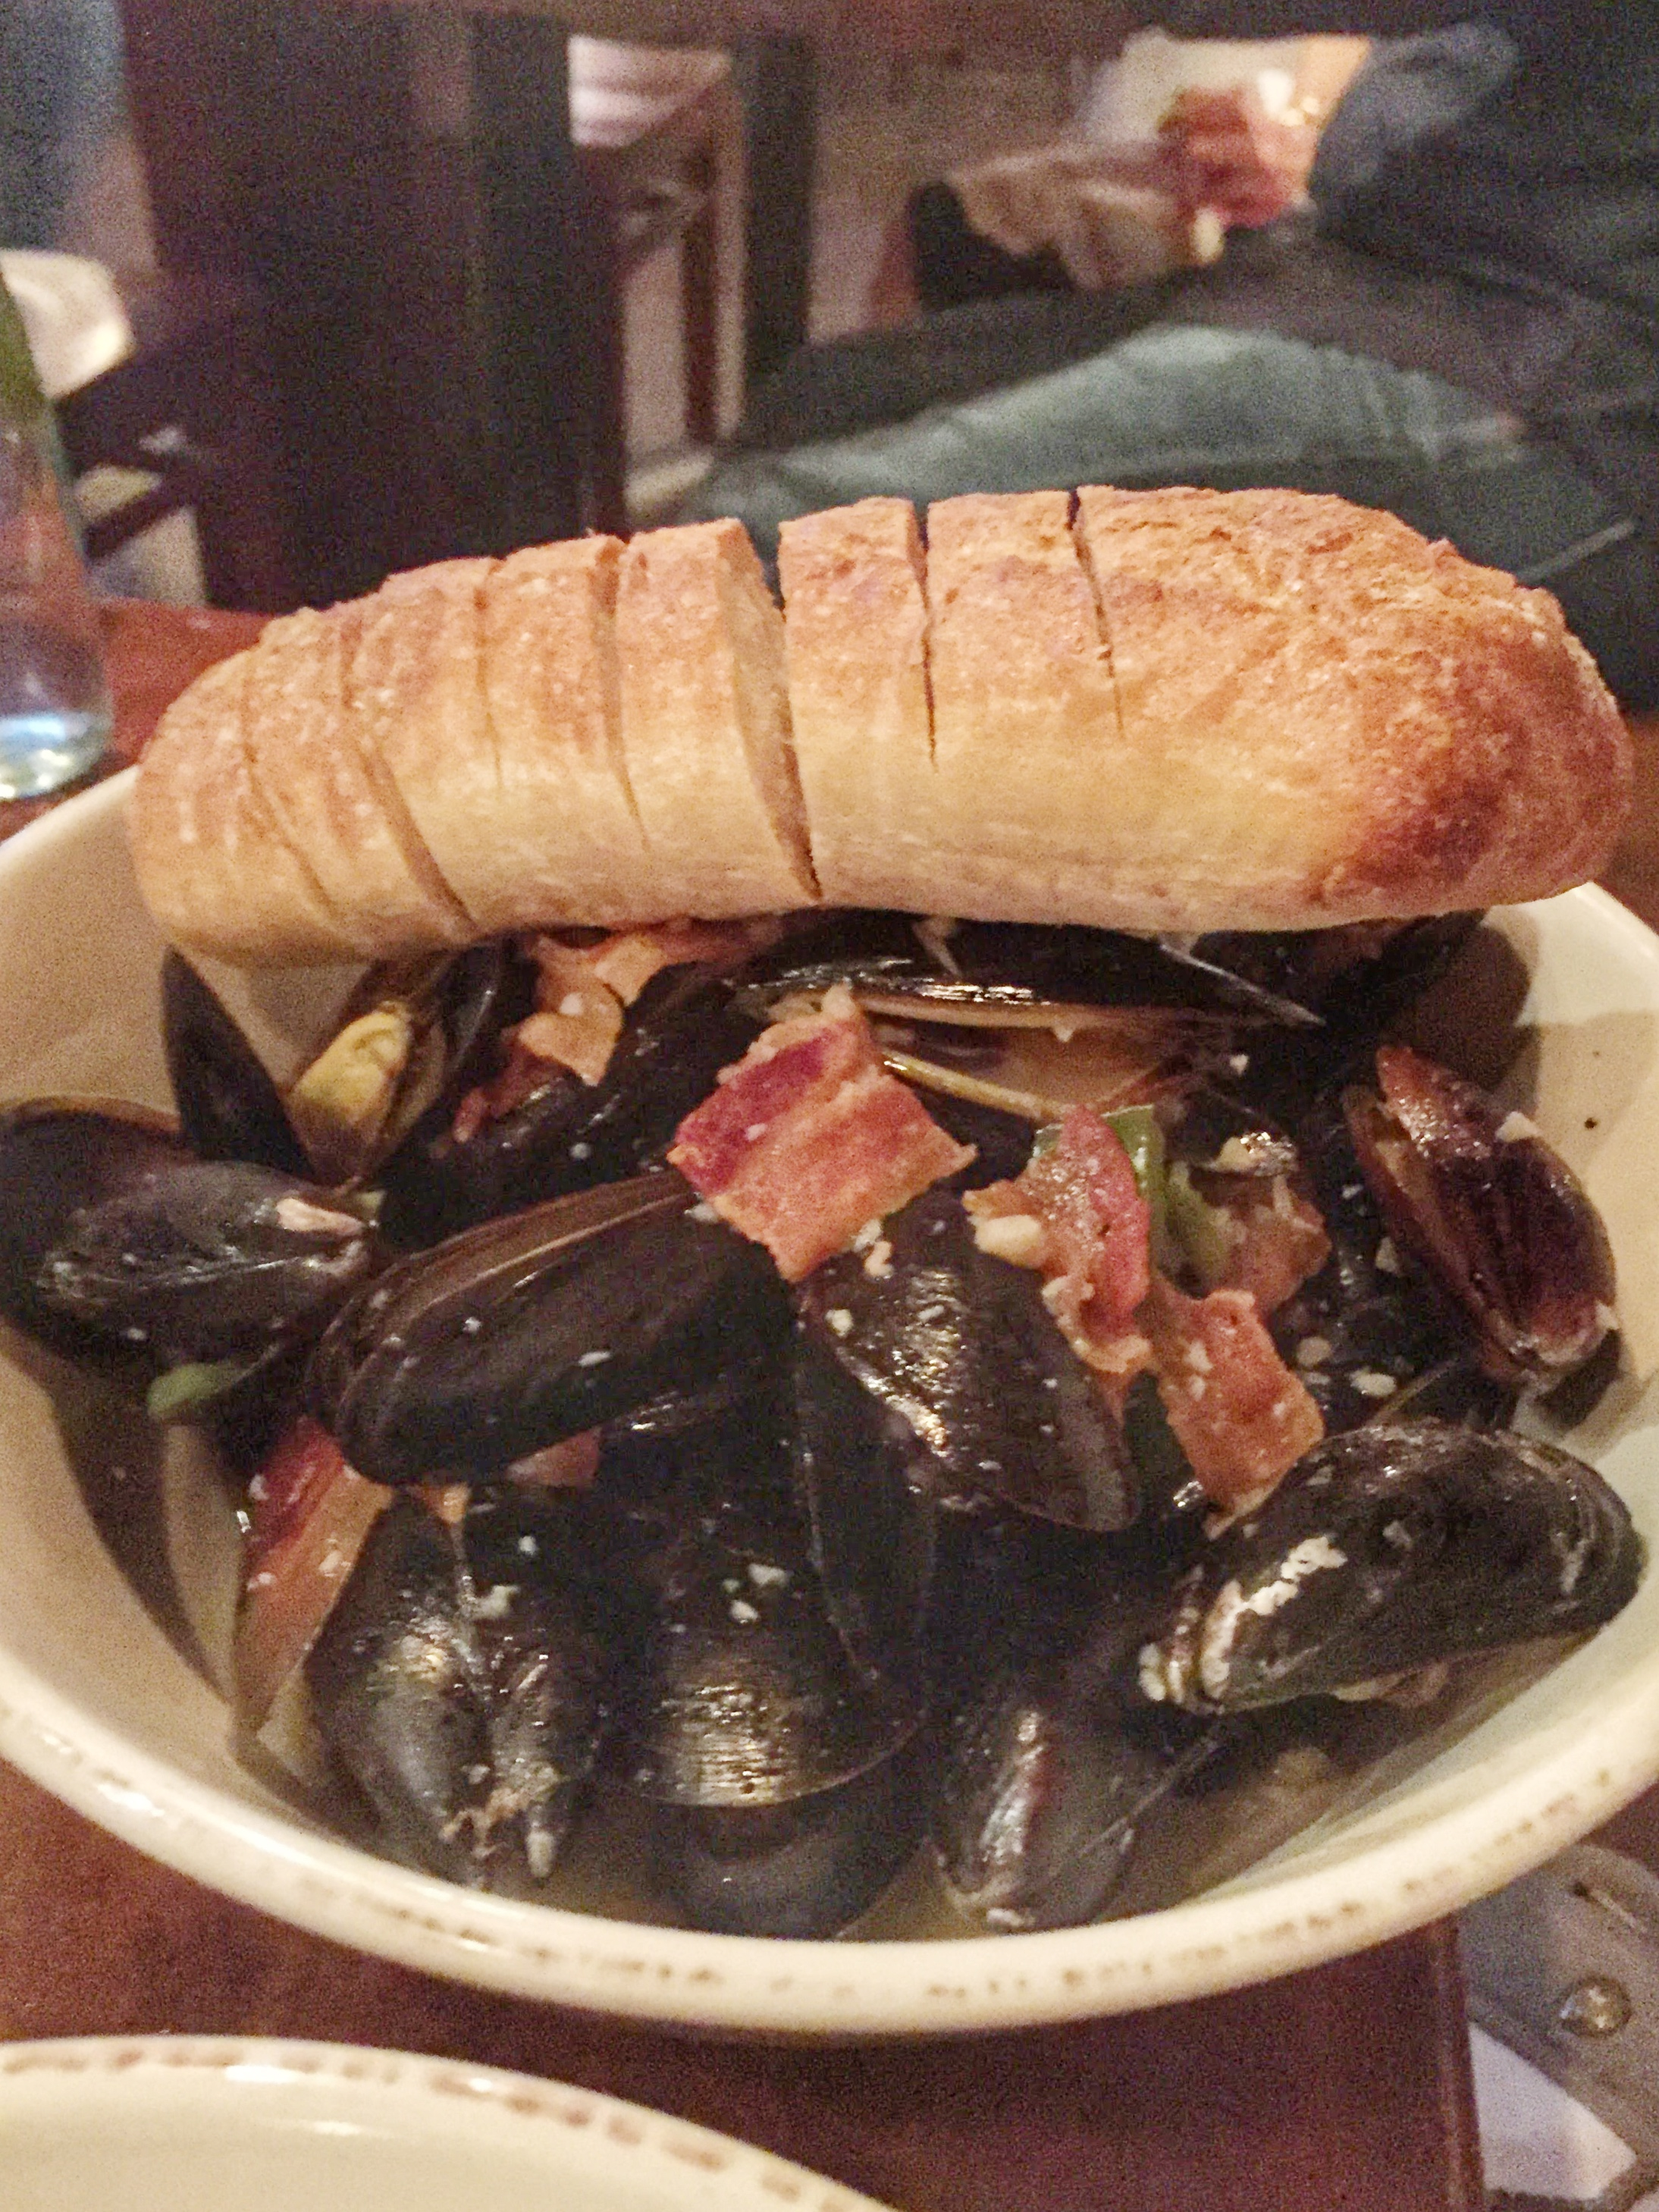 P.E.I. MUSSELS - bacon, caramelized onions, shallots, apples, cider cream